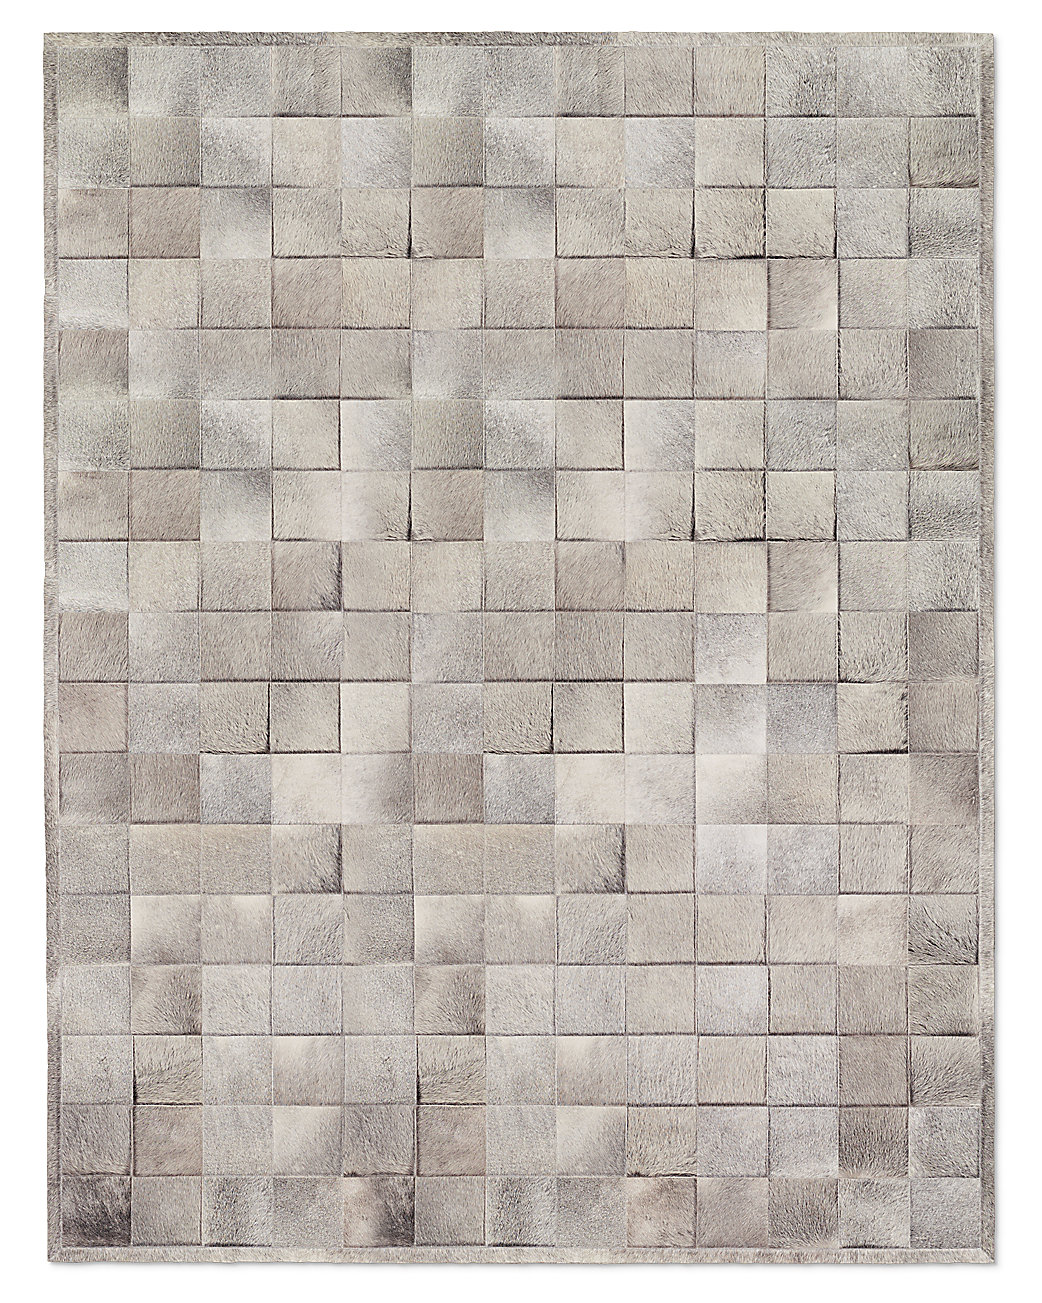 South American Cowhide Tile Rug Grey